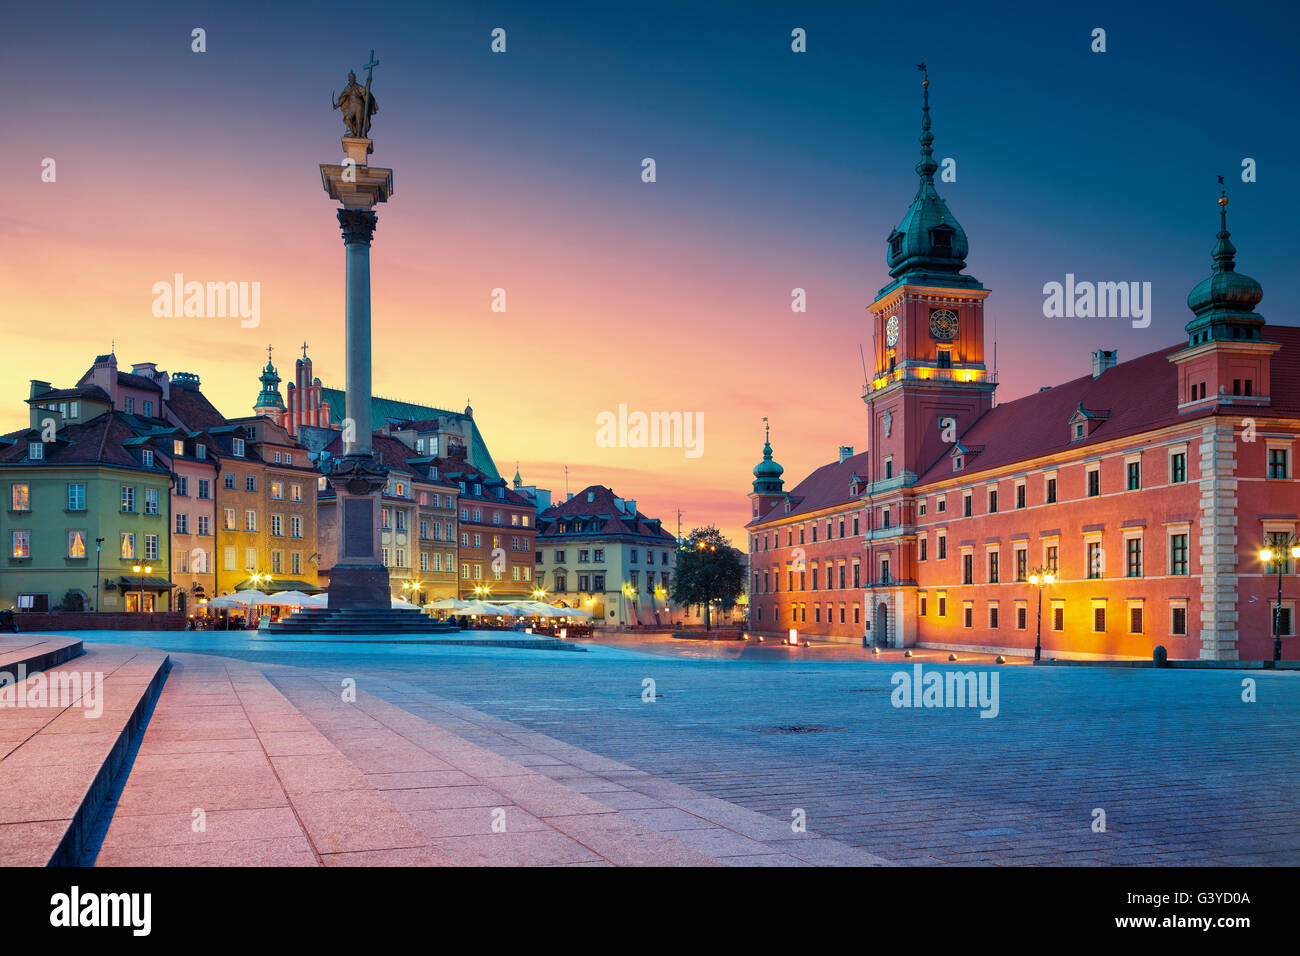 Warsaw. Image of Old Town Warsaw, Poland during sunset. Stock Photo